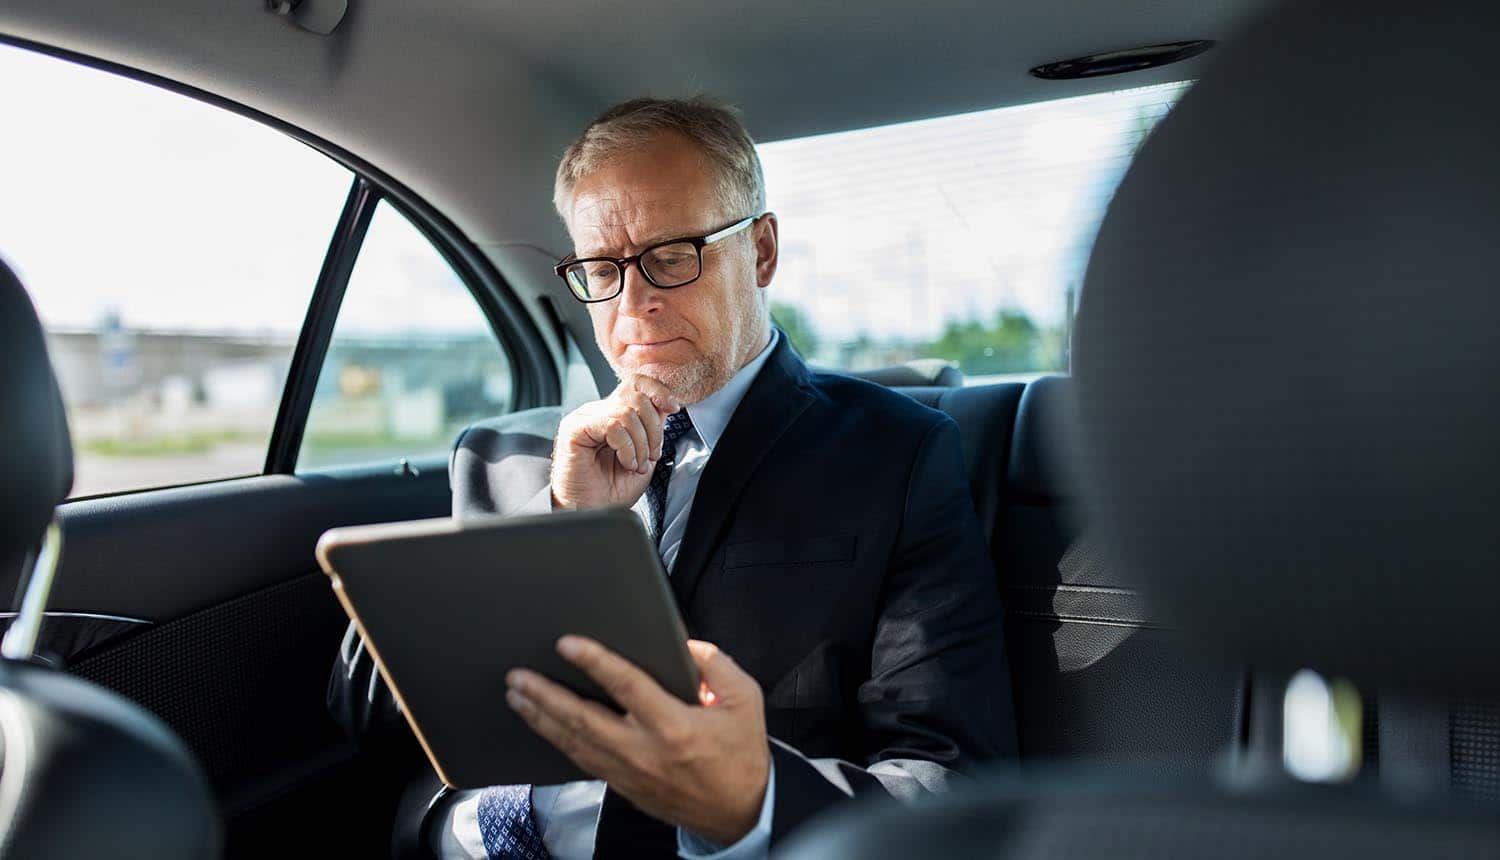 Businessman using tablet in car showing the Perswaysion phishing campaign that is targeting C-suite executives at international organizations